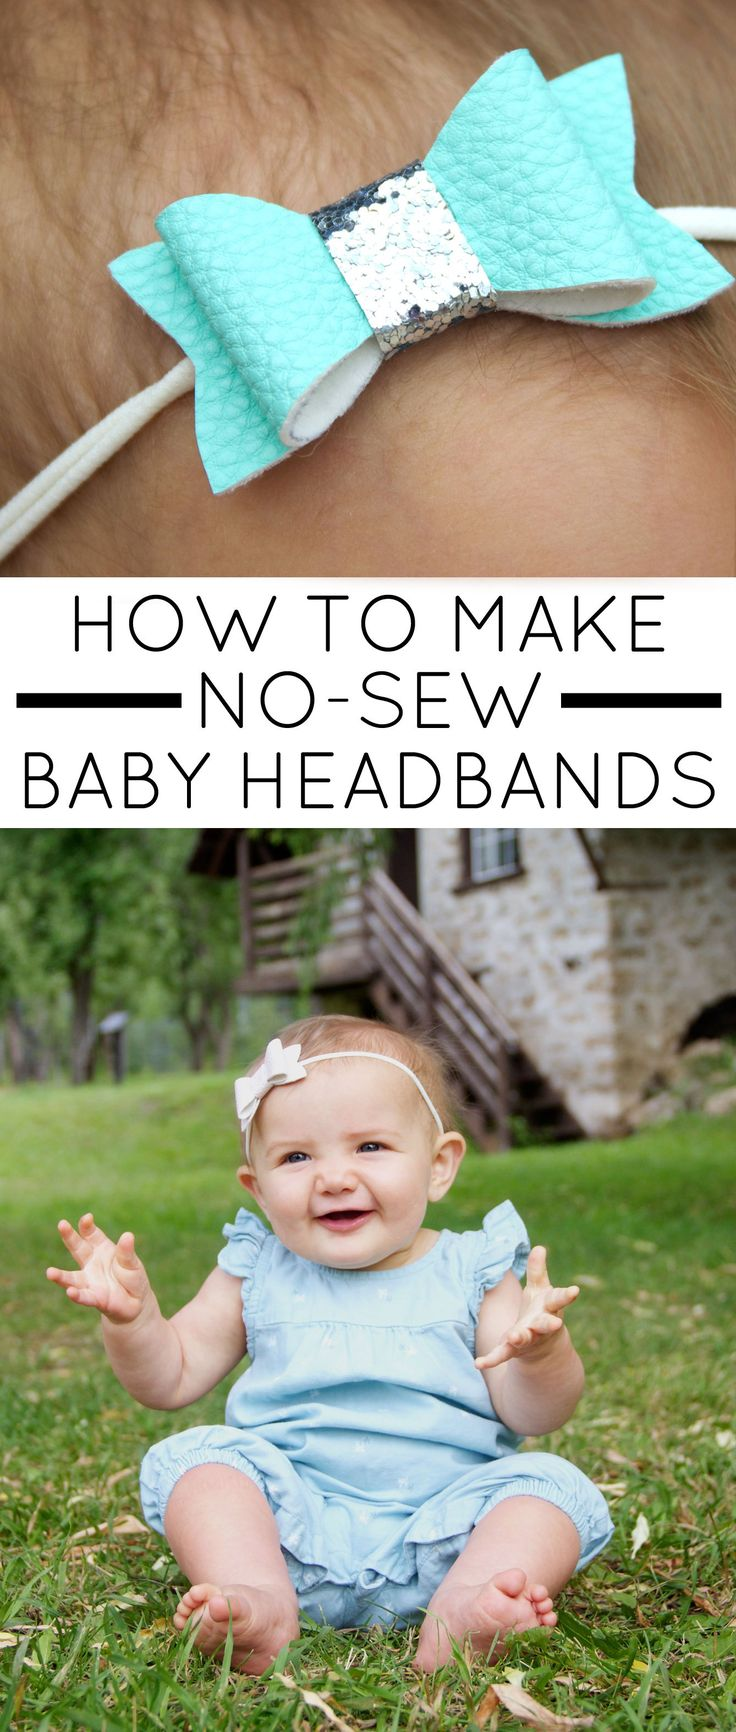 No-Sew Faux Leather Headband Tutorial. These bows are absolutely adorable and fun to make! You can make these bows using faux leather, felt, etc.